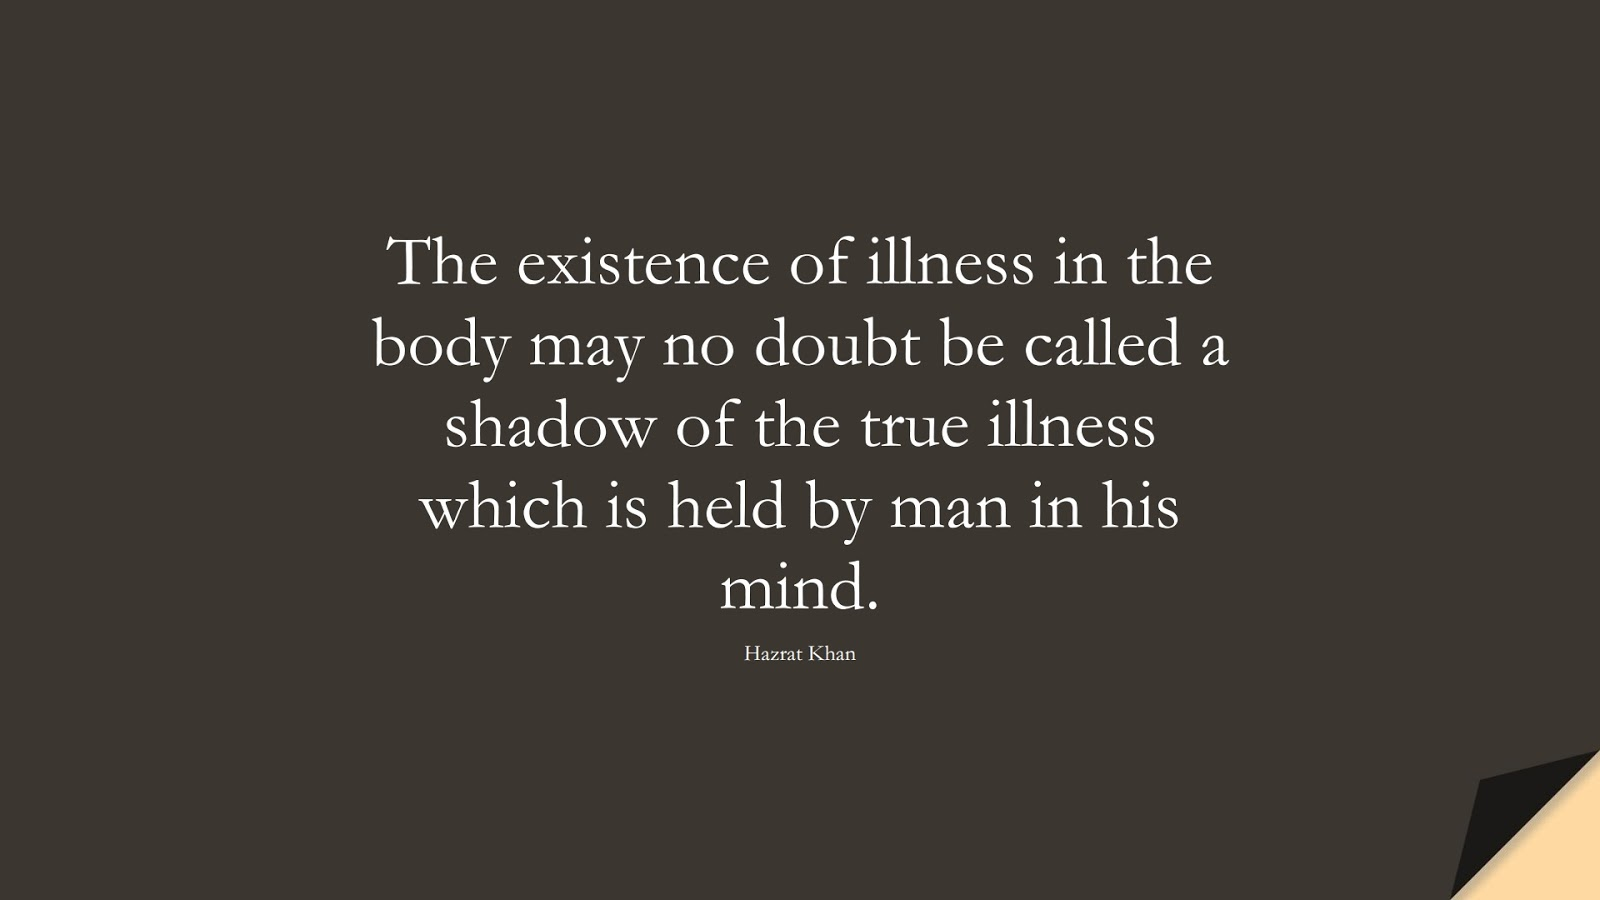 The existence of illness in the body may no doubt be called a shadow of the true illness which is held by man in his mind. (Hazrat Khan);  #HealthQuotes